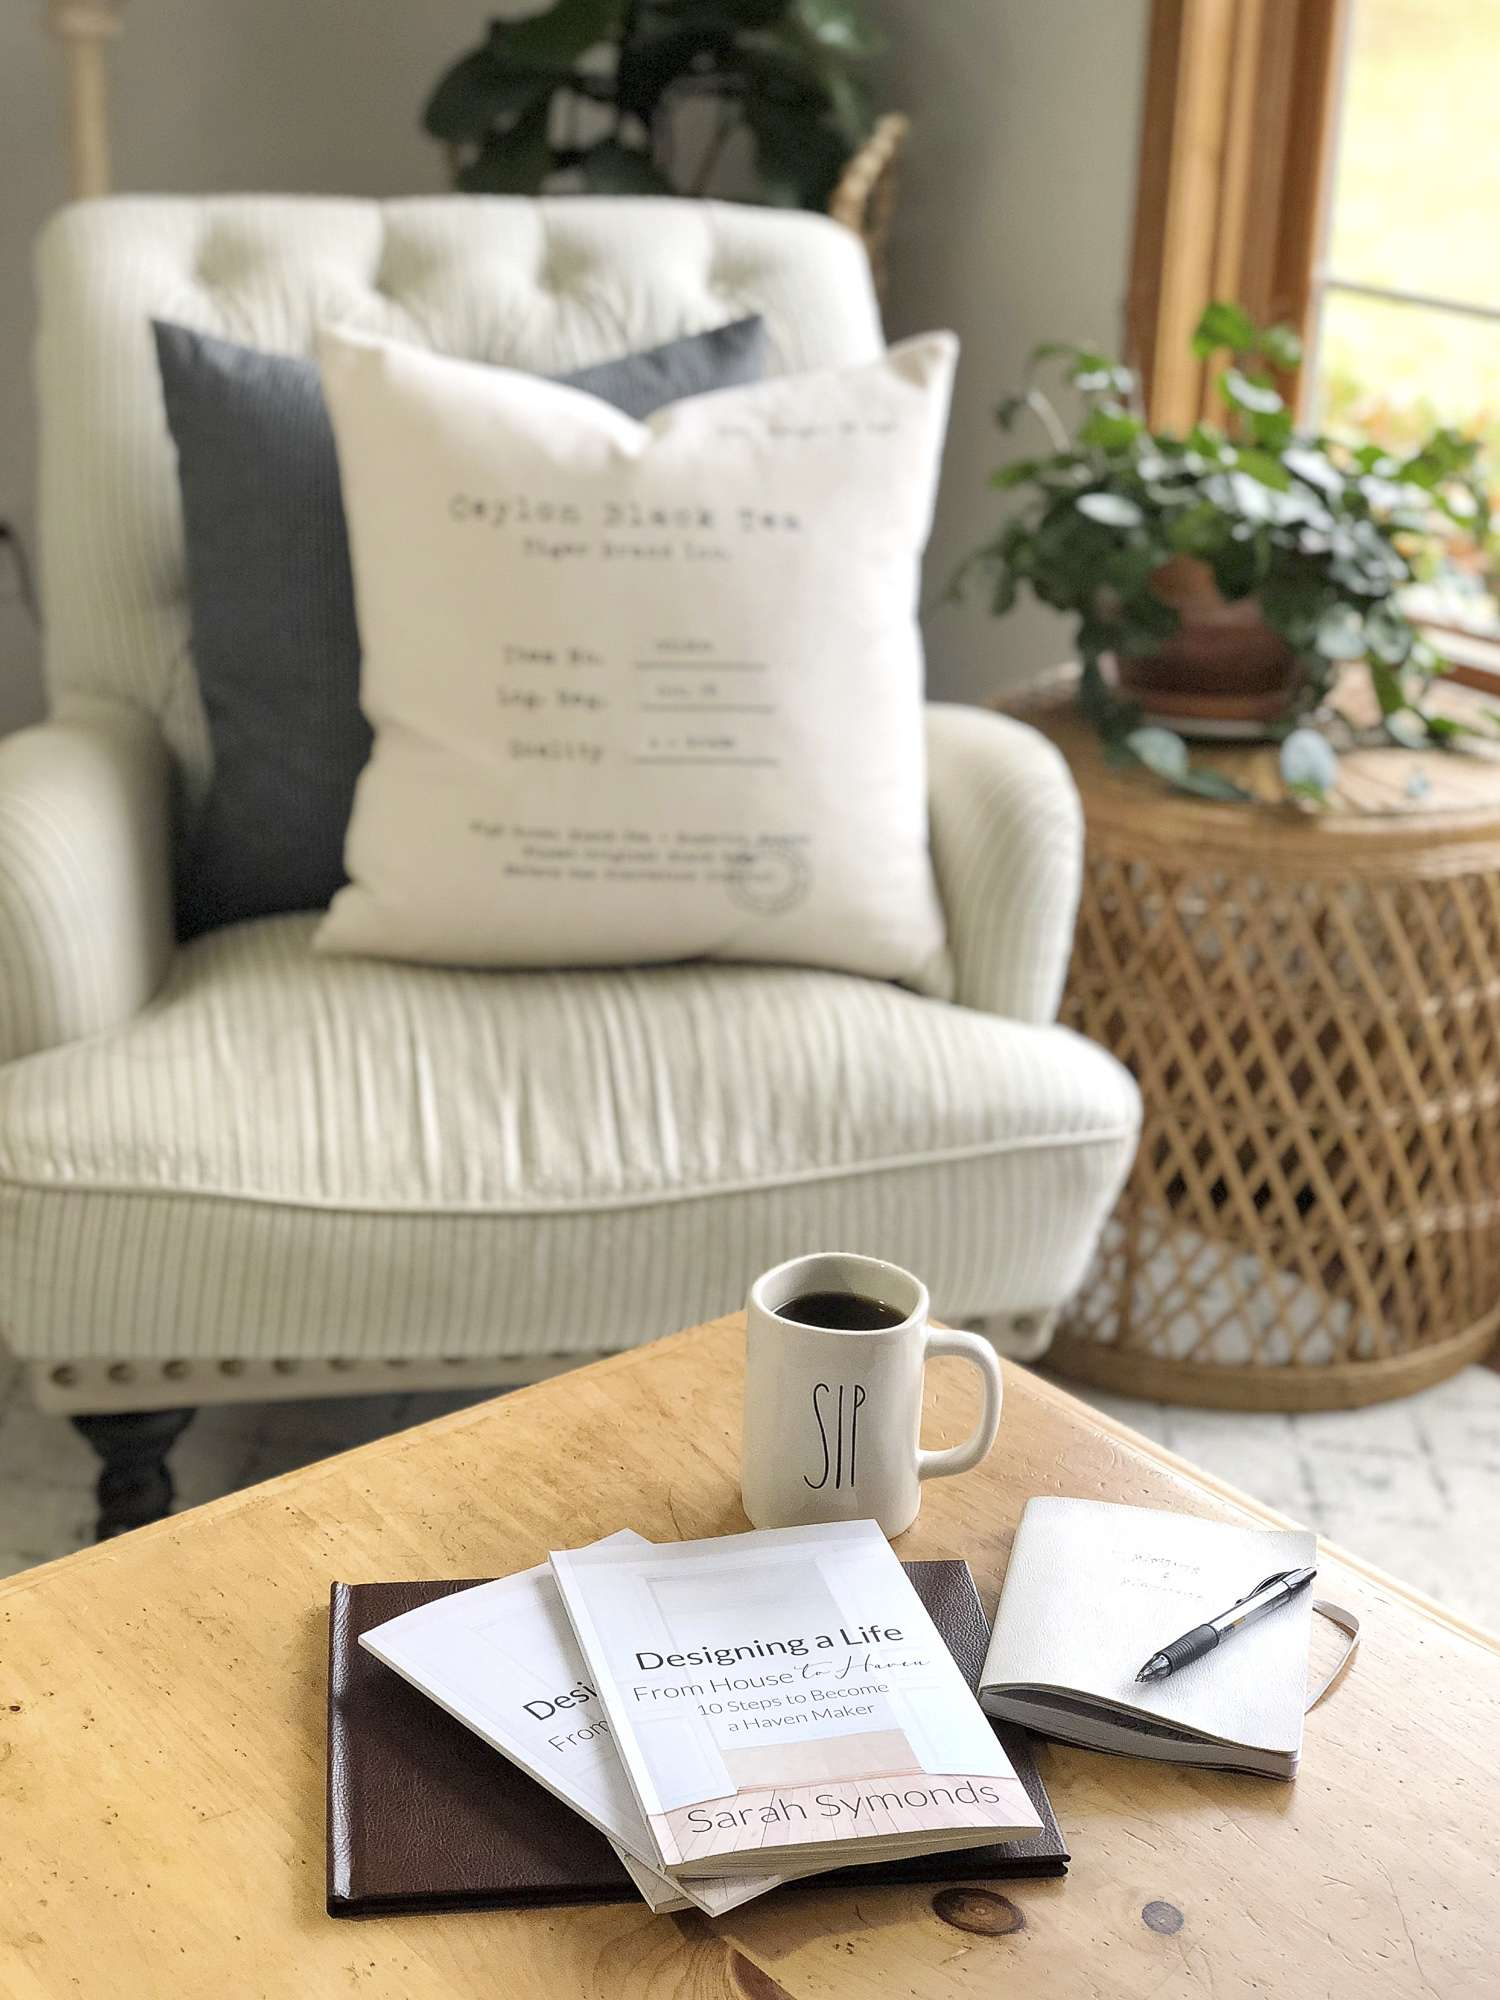 Are you ready to make your house into a haven? With my interior design book, Designing a Life: From House to Haven, learn 10 steps to become a haven maker.